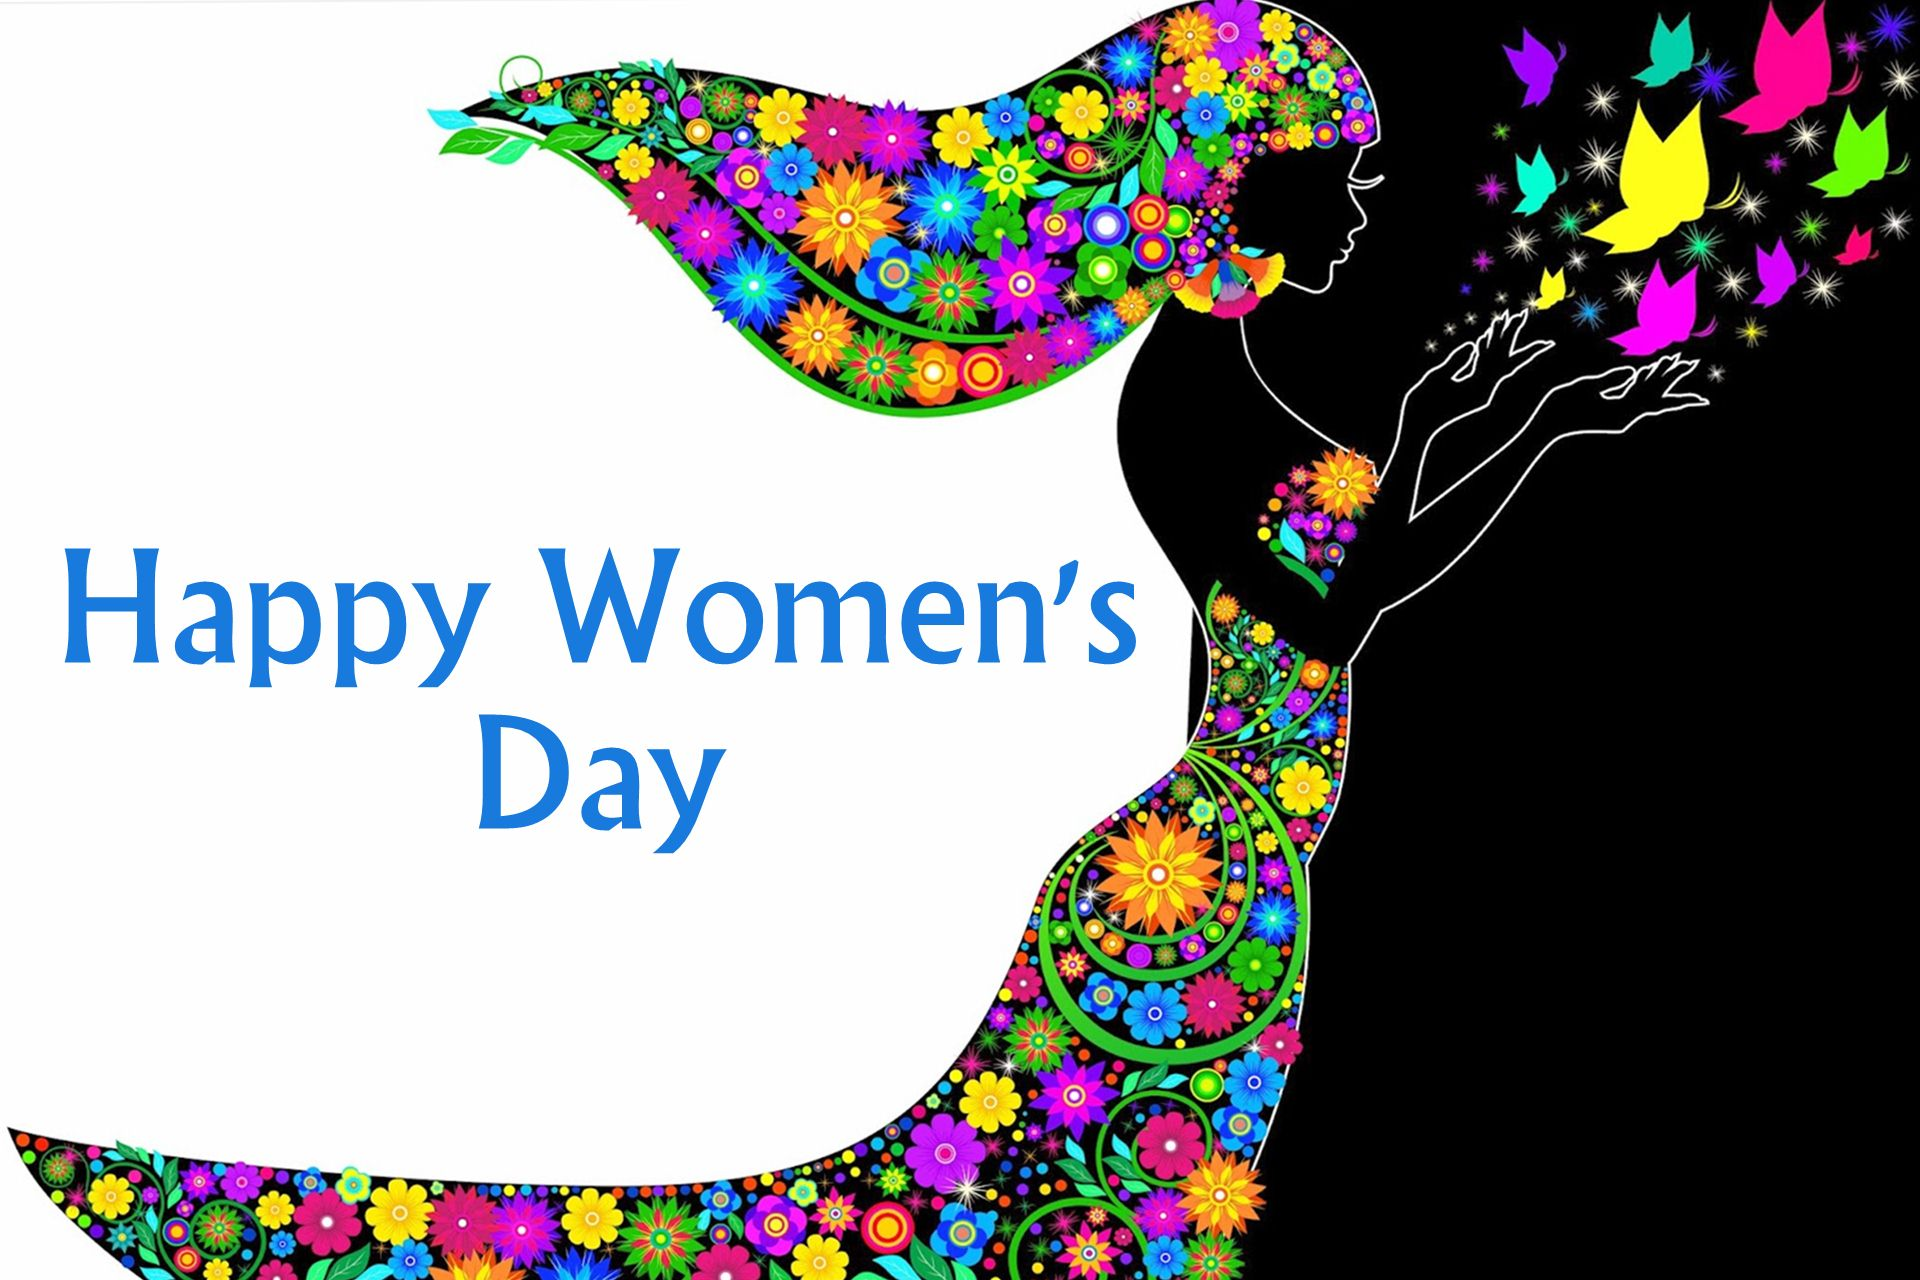 happy womens day greetings wishes latest cute image hd wallpaper